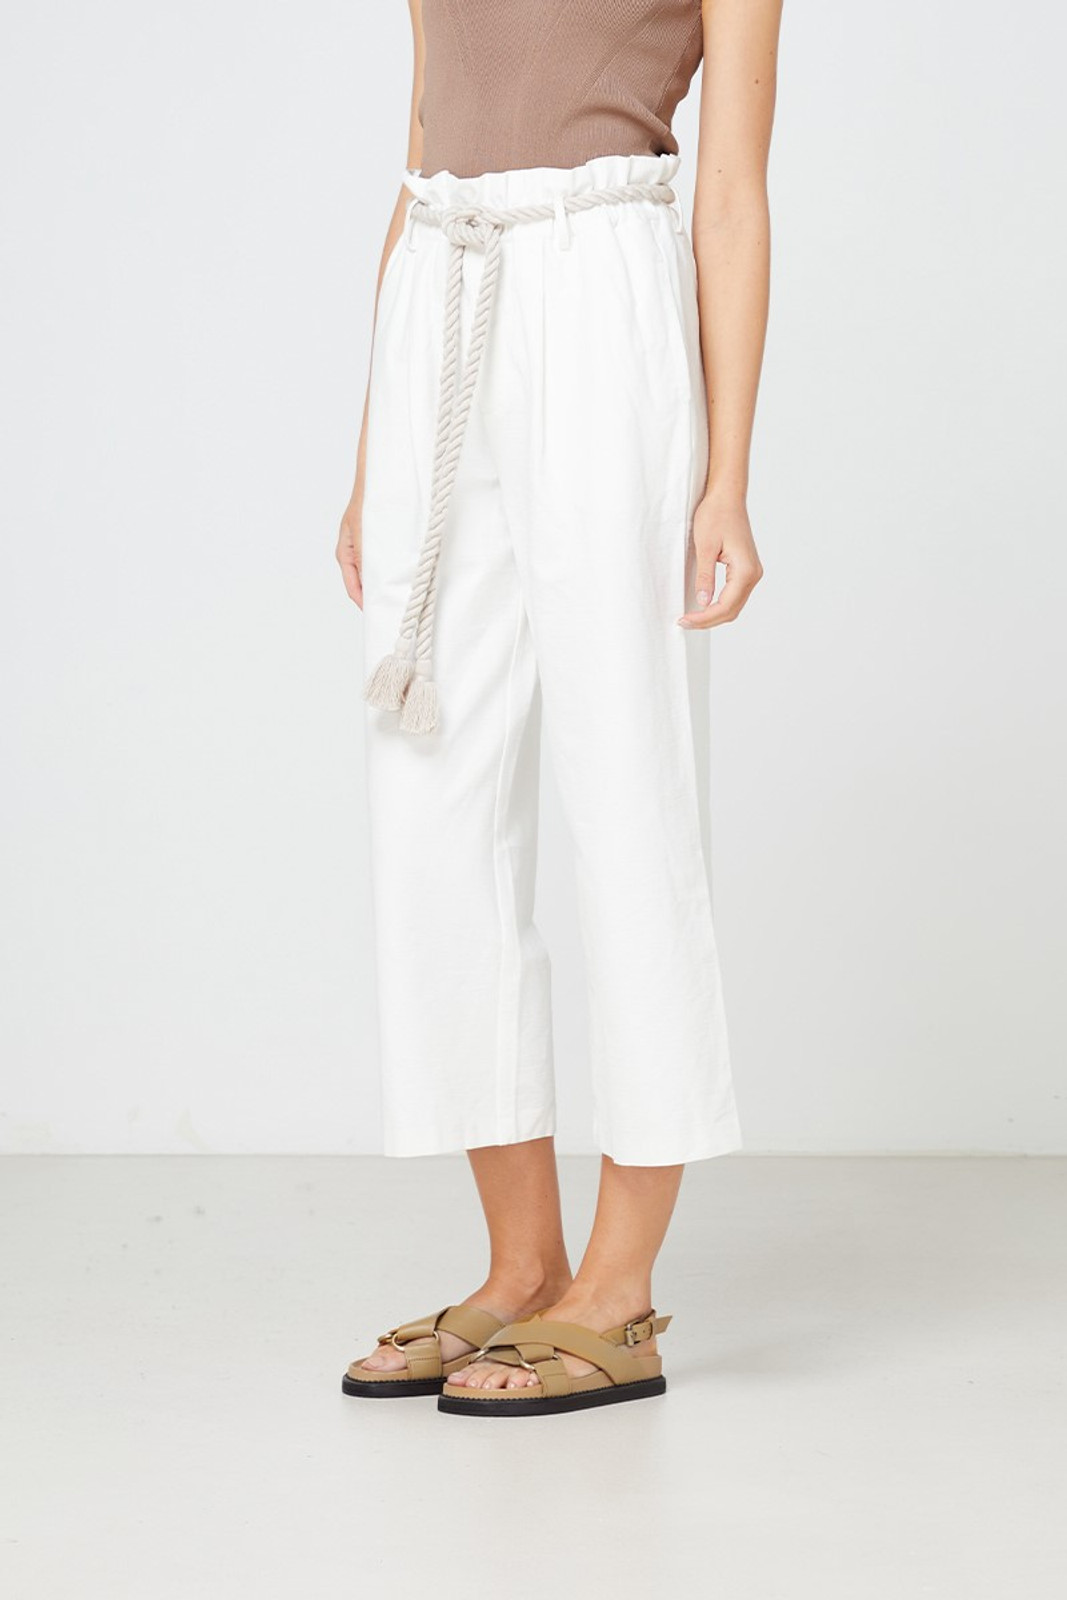 Elka Collective Arden Pant White  2